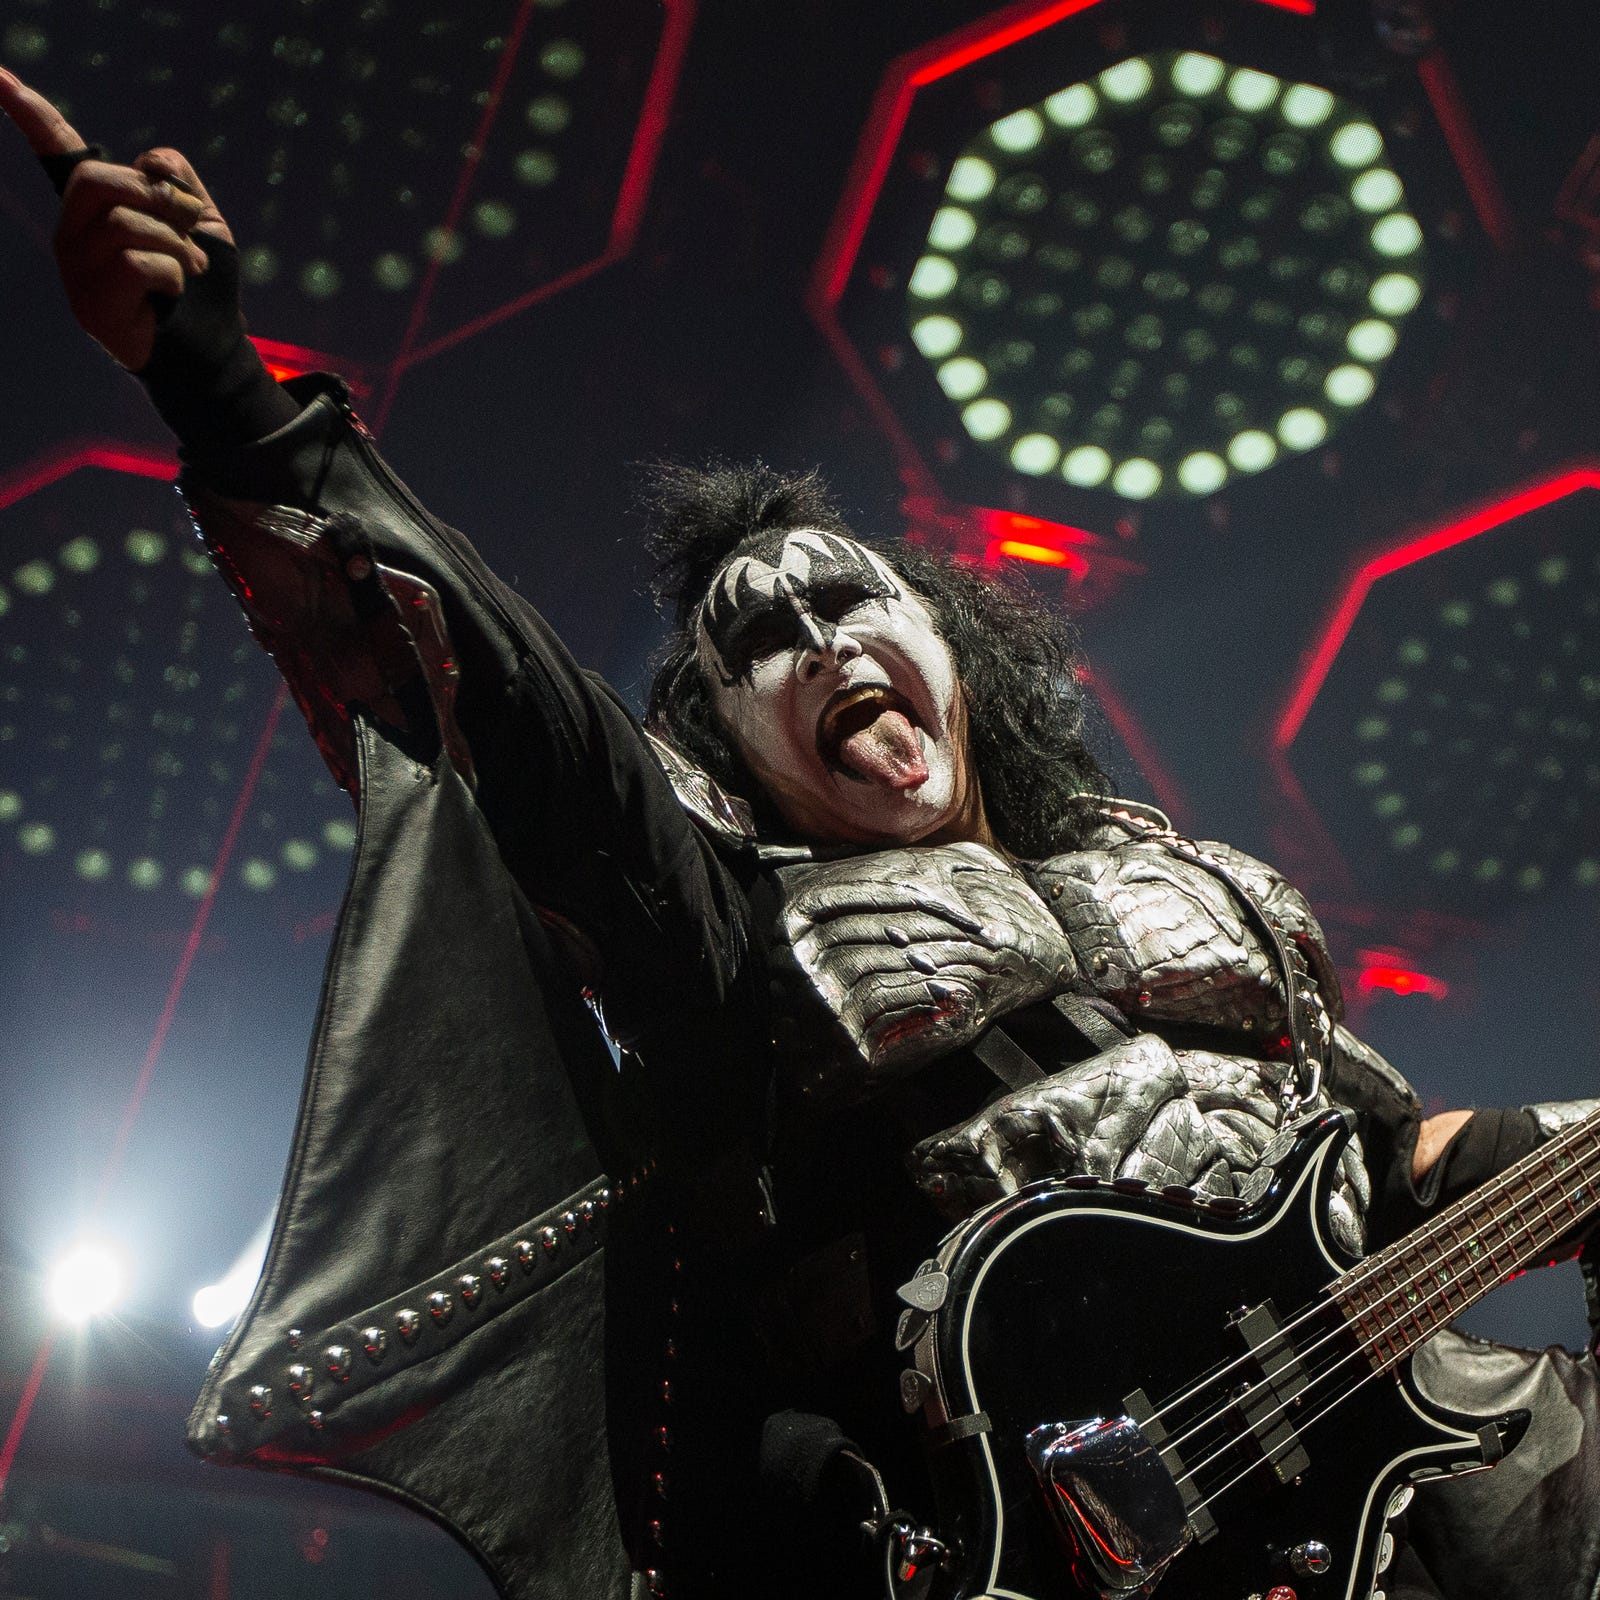 Kiss comes in with fire, ends with a bang, as band's farewell tour hits Detroit